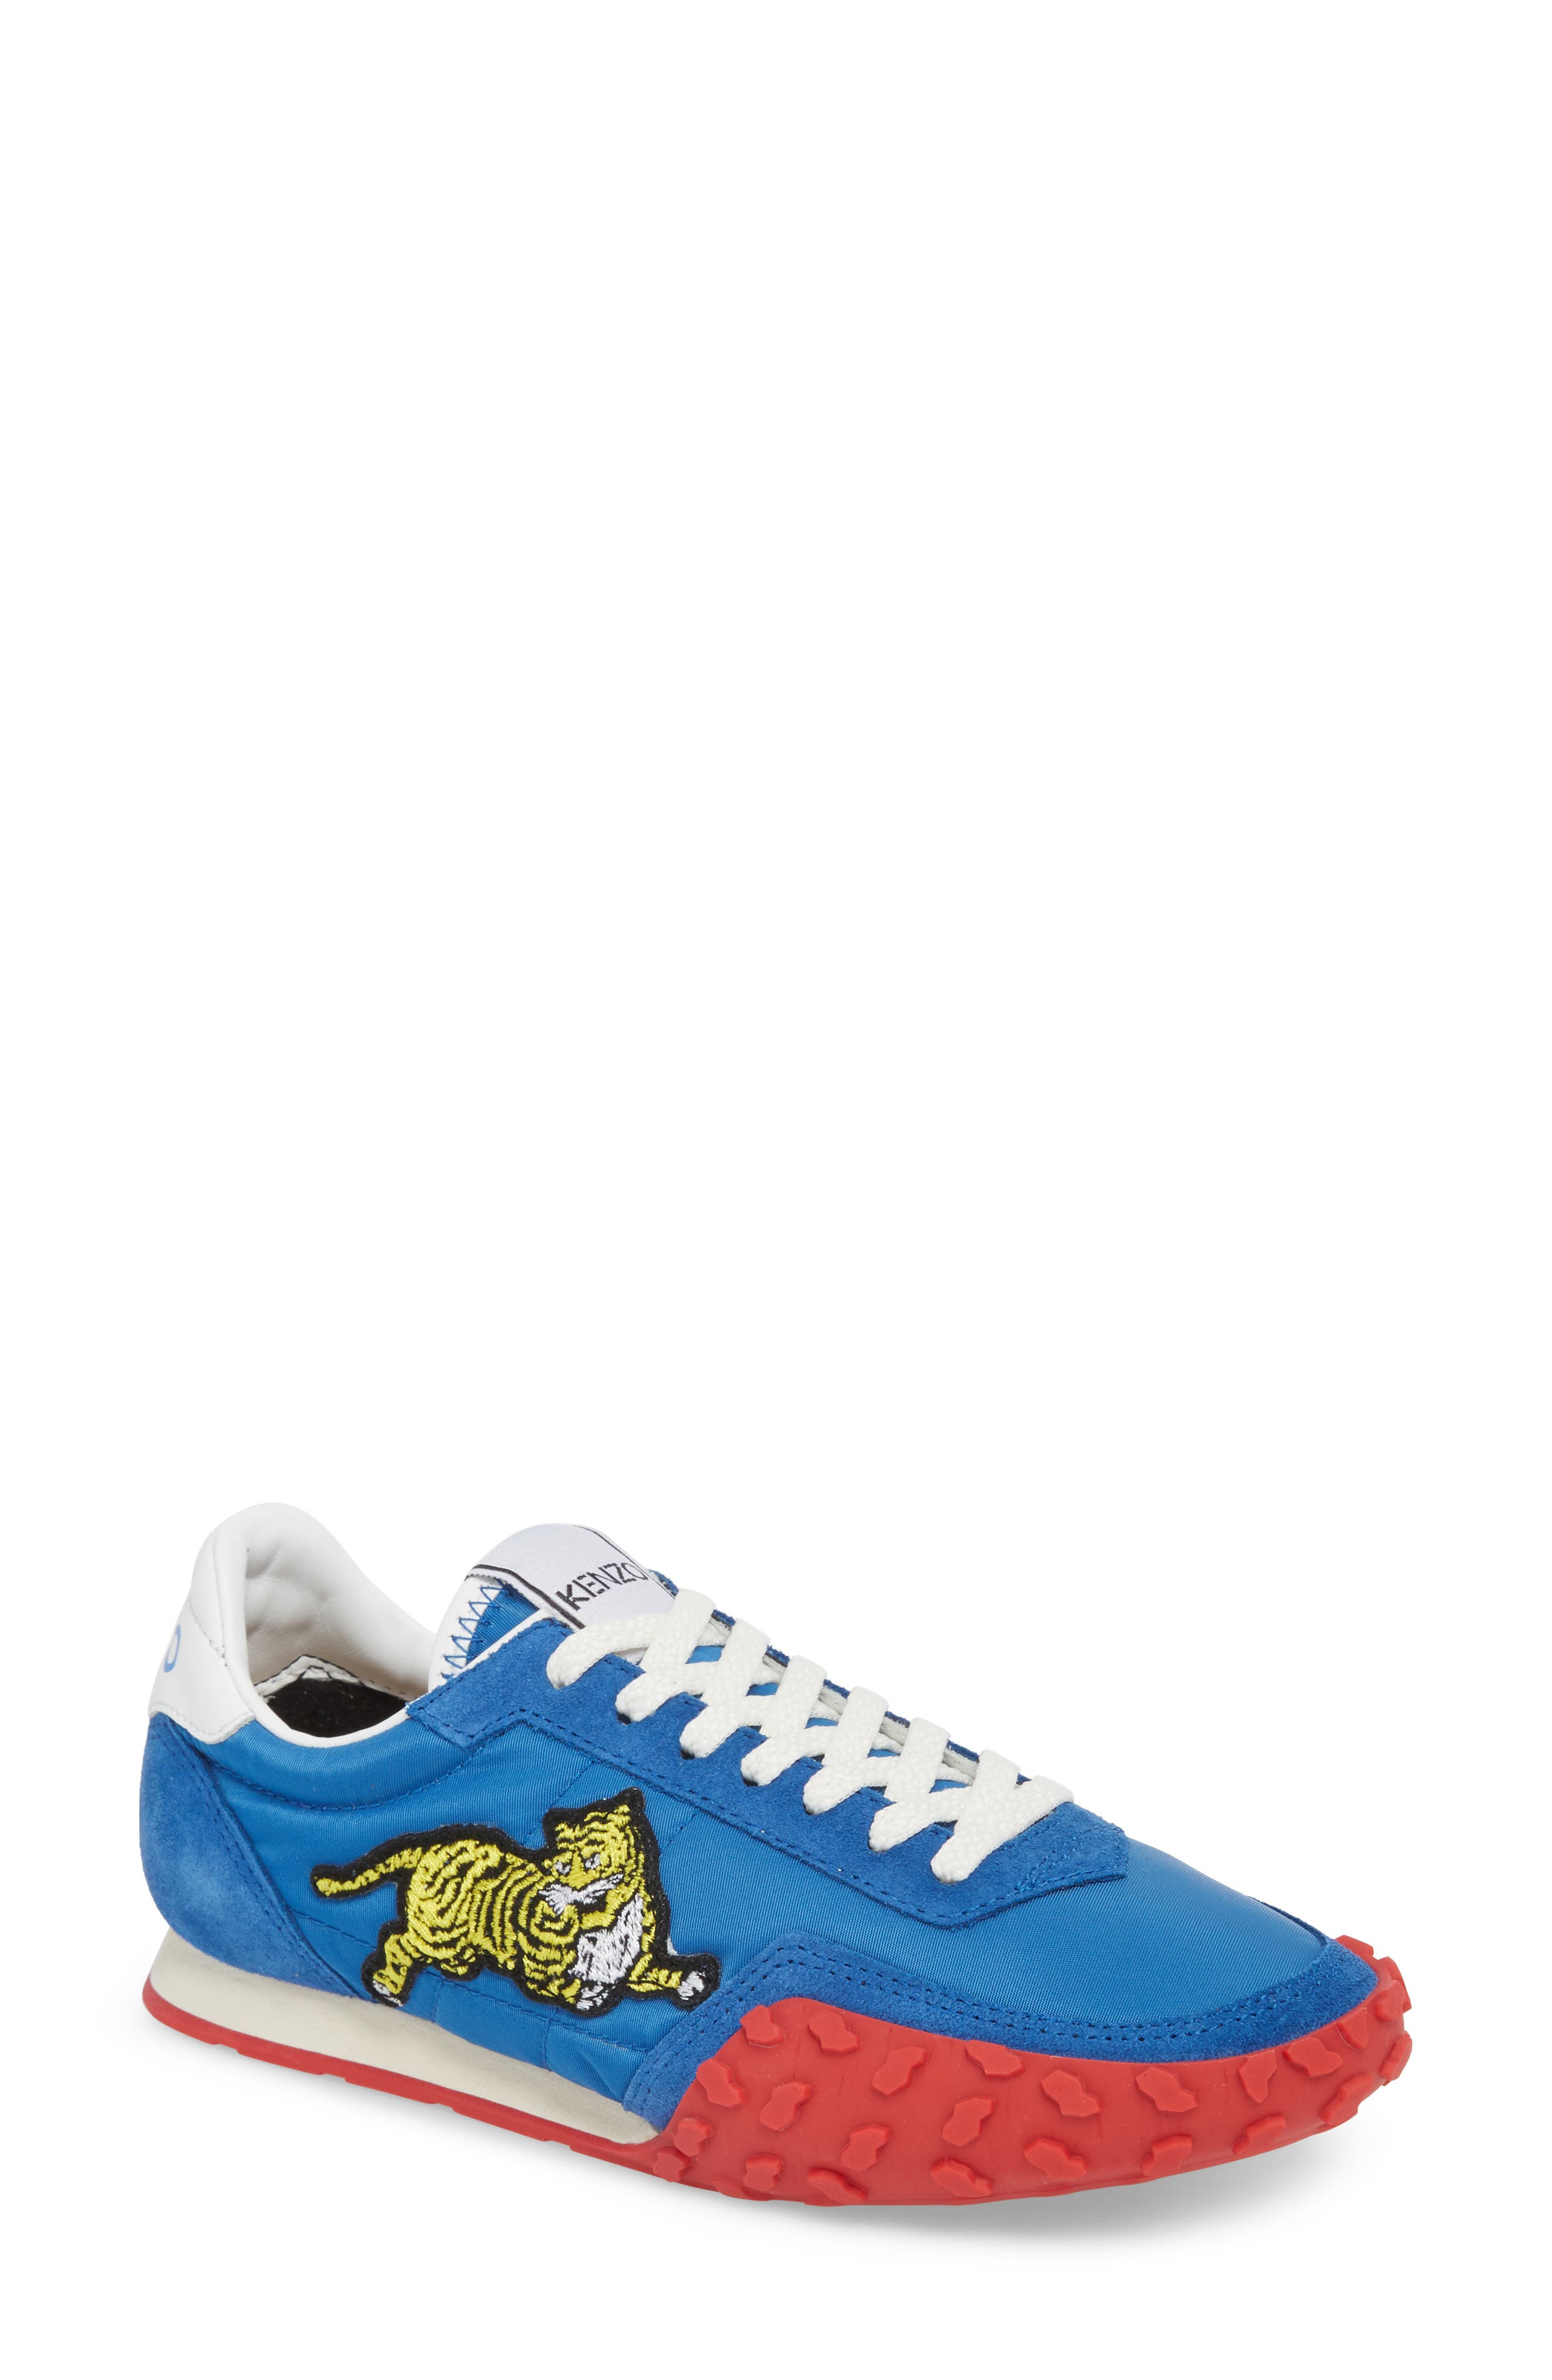 MOVE Sneaker,                         Main,                         color, BLUE